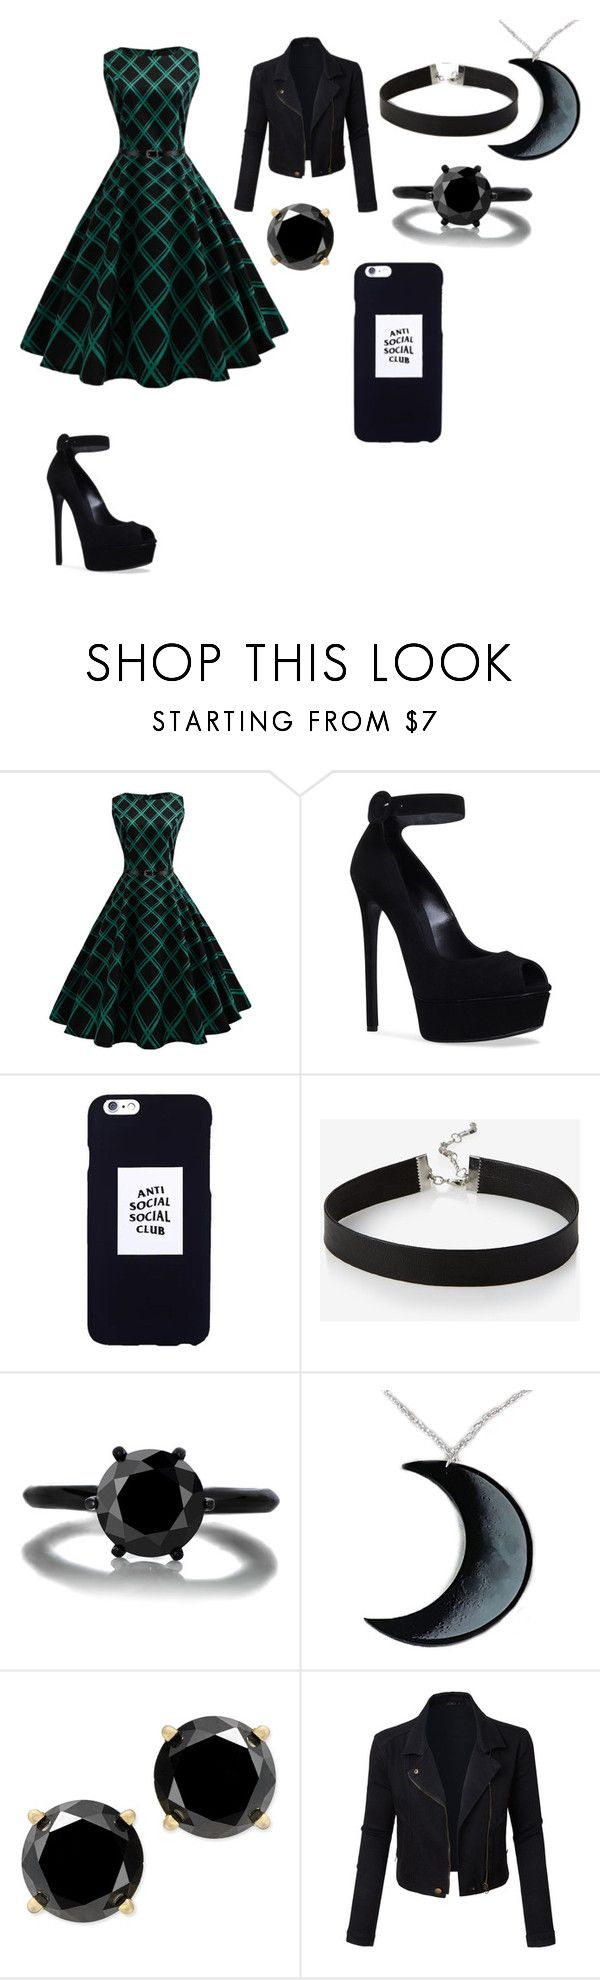 """""""Untitled #248"""" by candysmash6252 on Polyvore featuring WithChic, Casadei, Anti Social Social Club, Express, Curiology and LE3NO"""